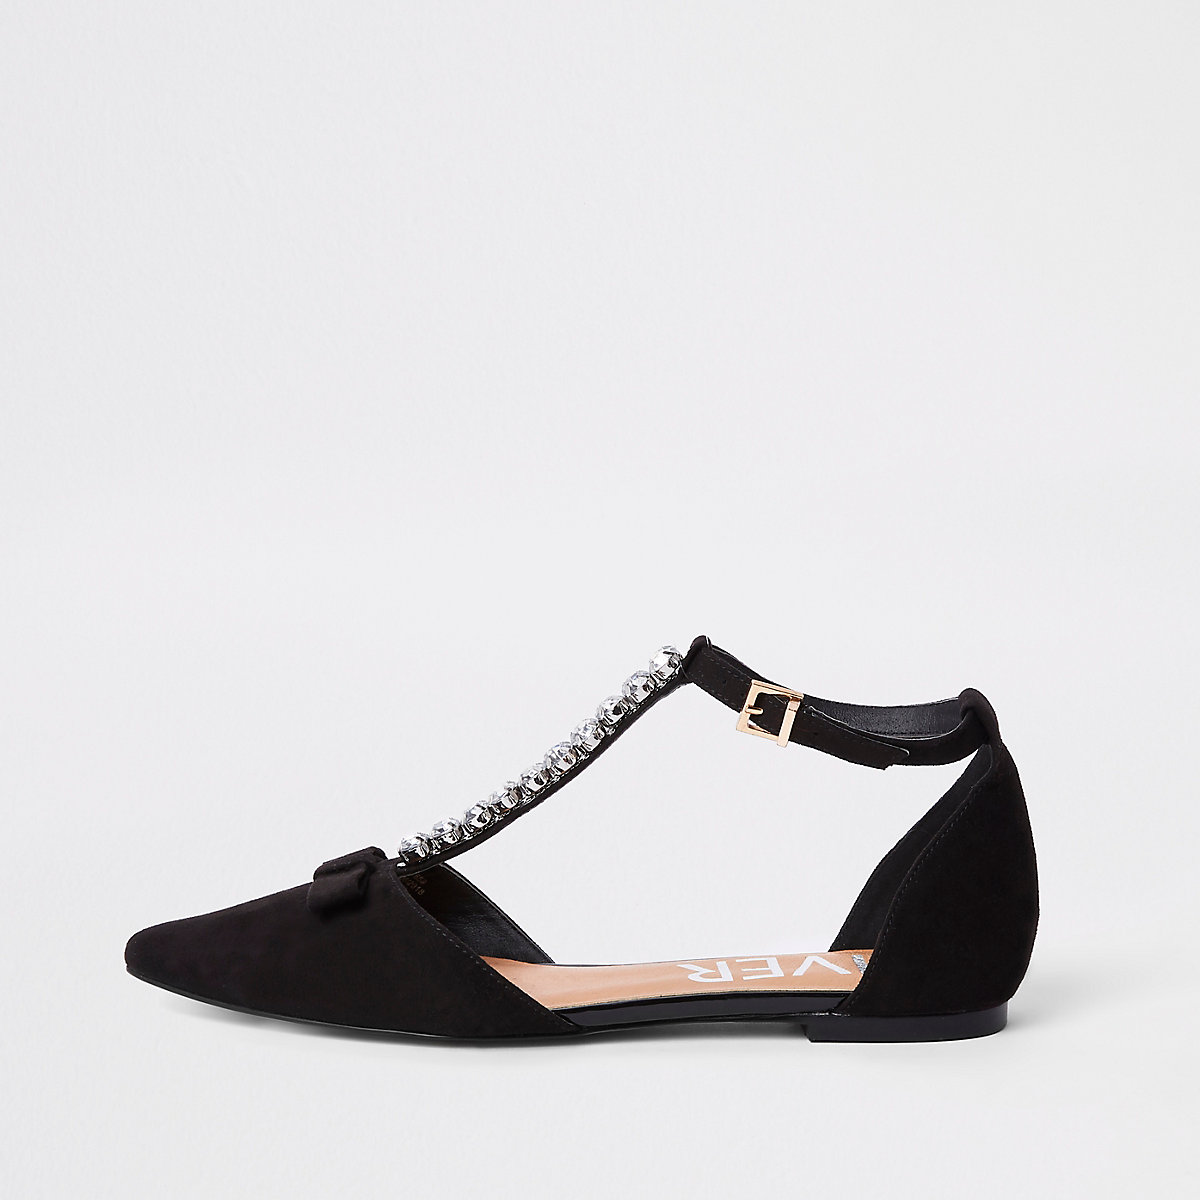 Black jewel pointed strappy shoes - Shoes & Boots - Sale - women